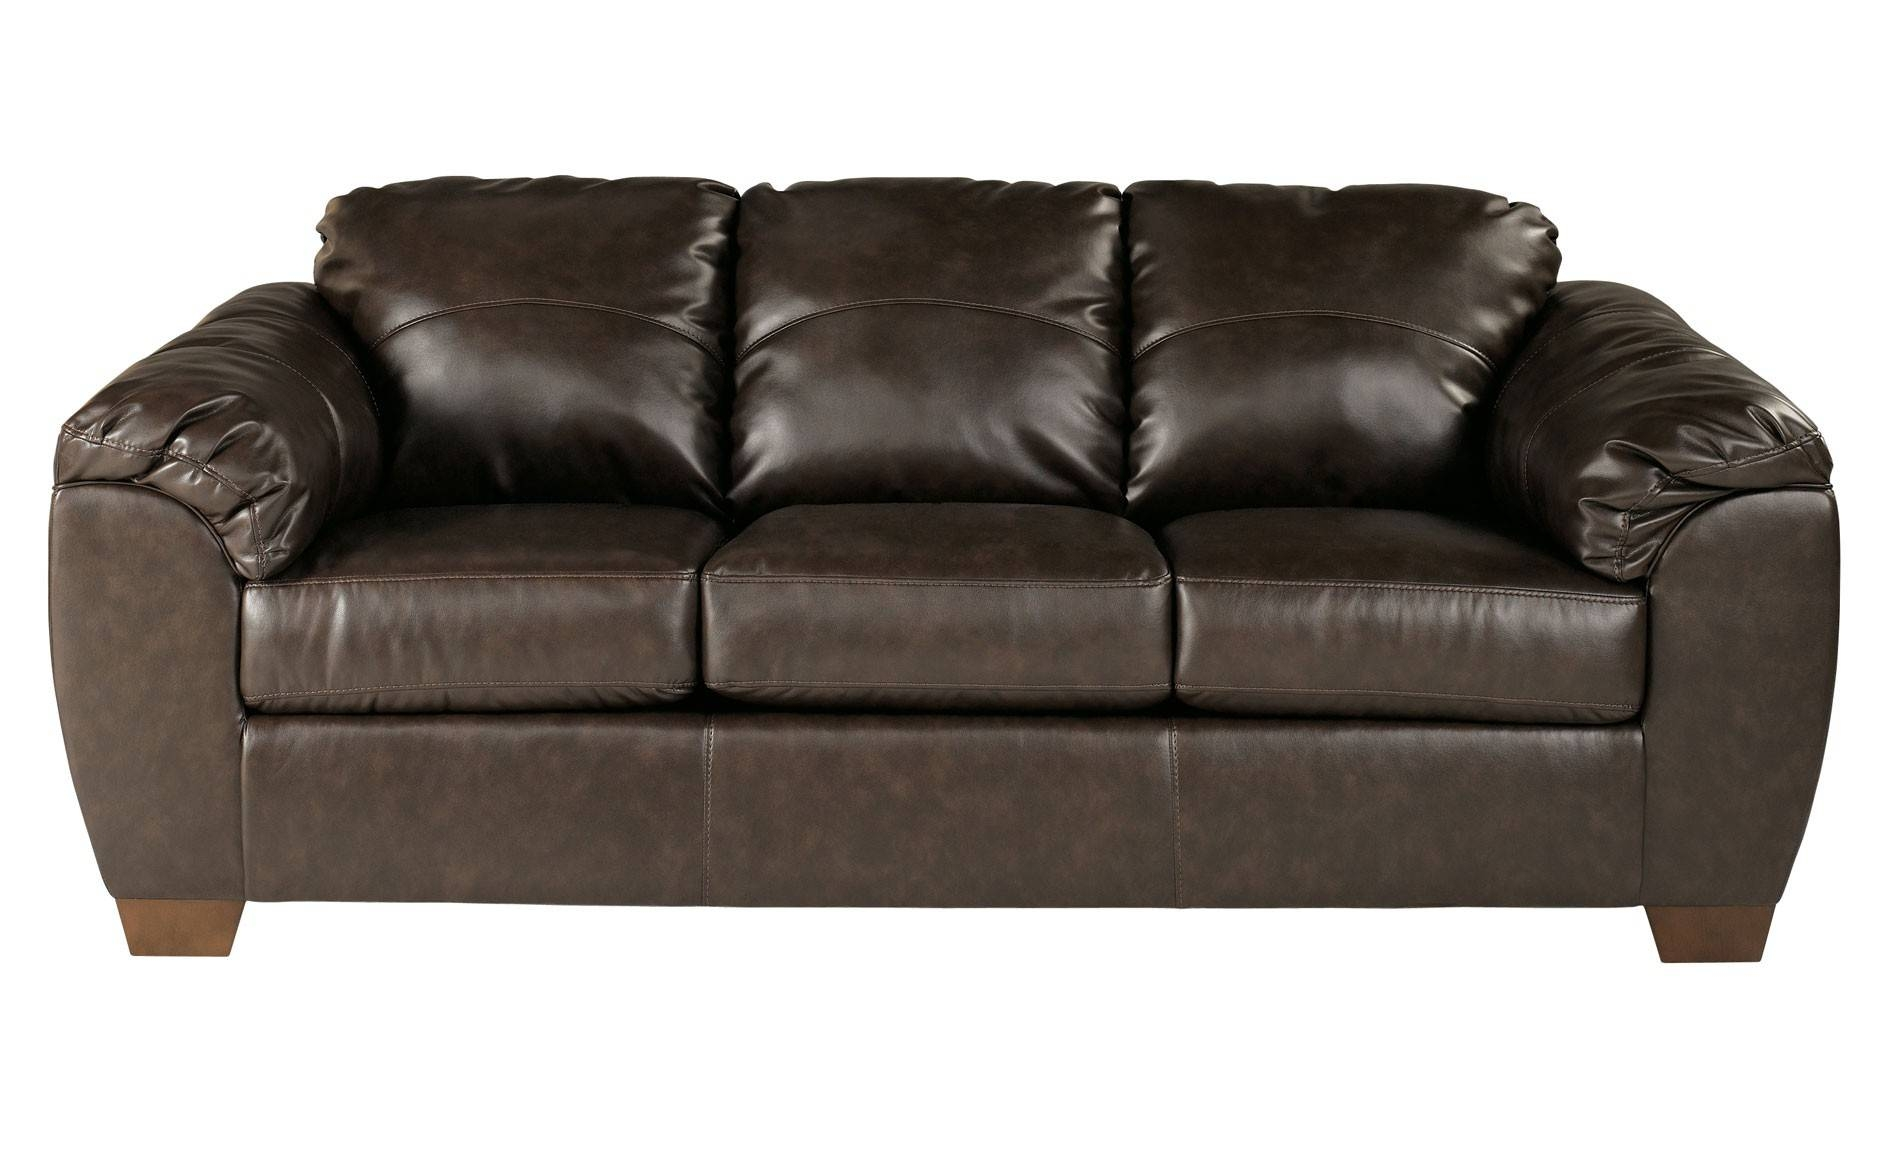 Sofas Center : Leather Sofa With Pull Out Corner Beds Storage pertaining to Leather Storage Sofas (Image 27 of 30)